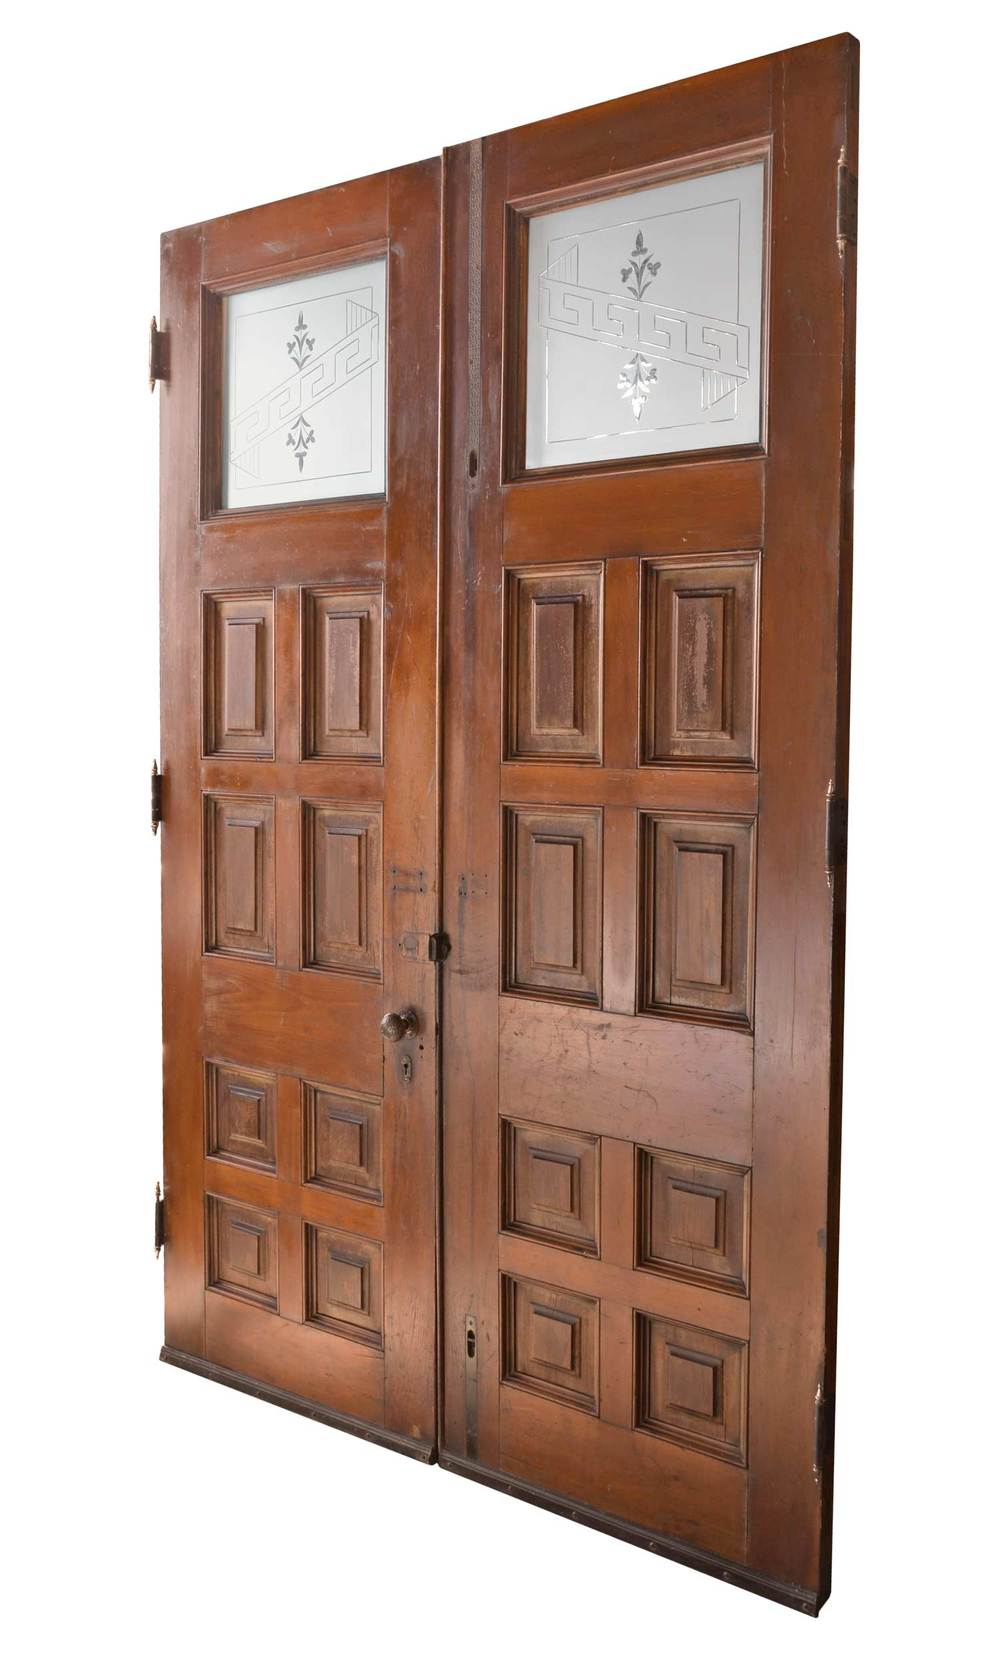 46019-double-doors-with-etched-glass-back.jpg